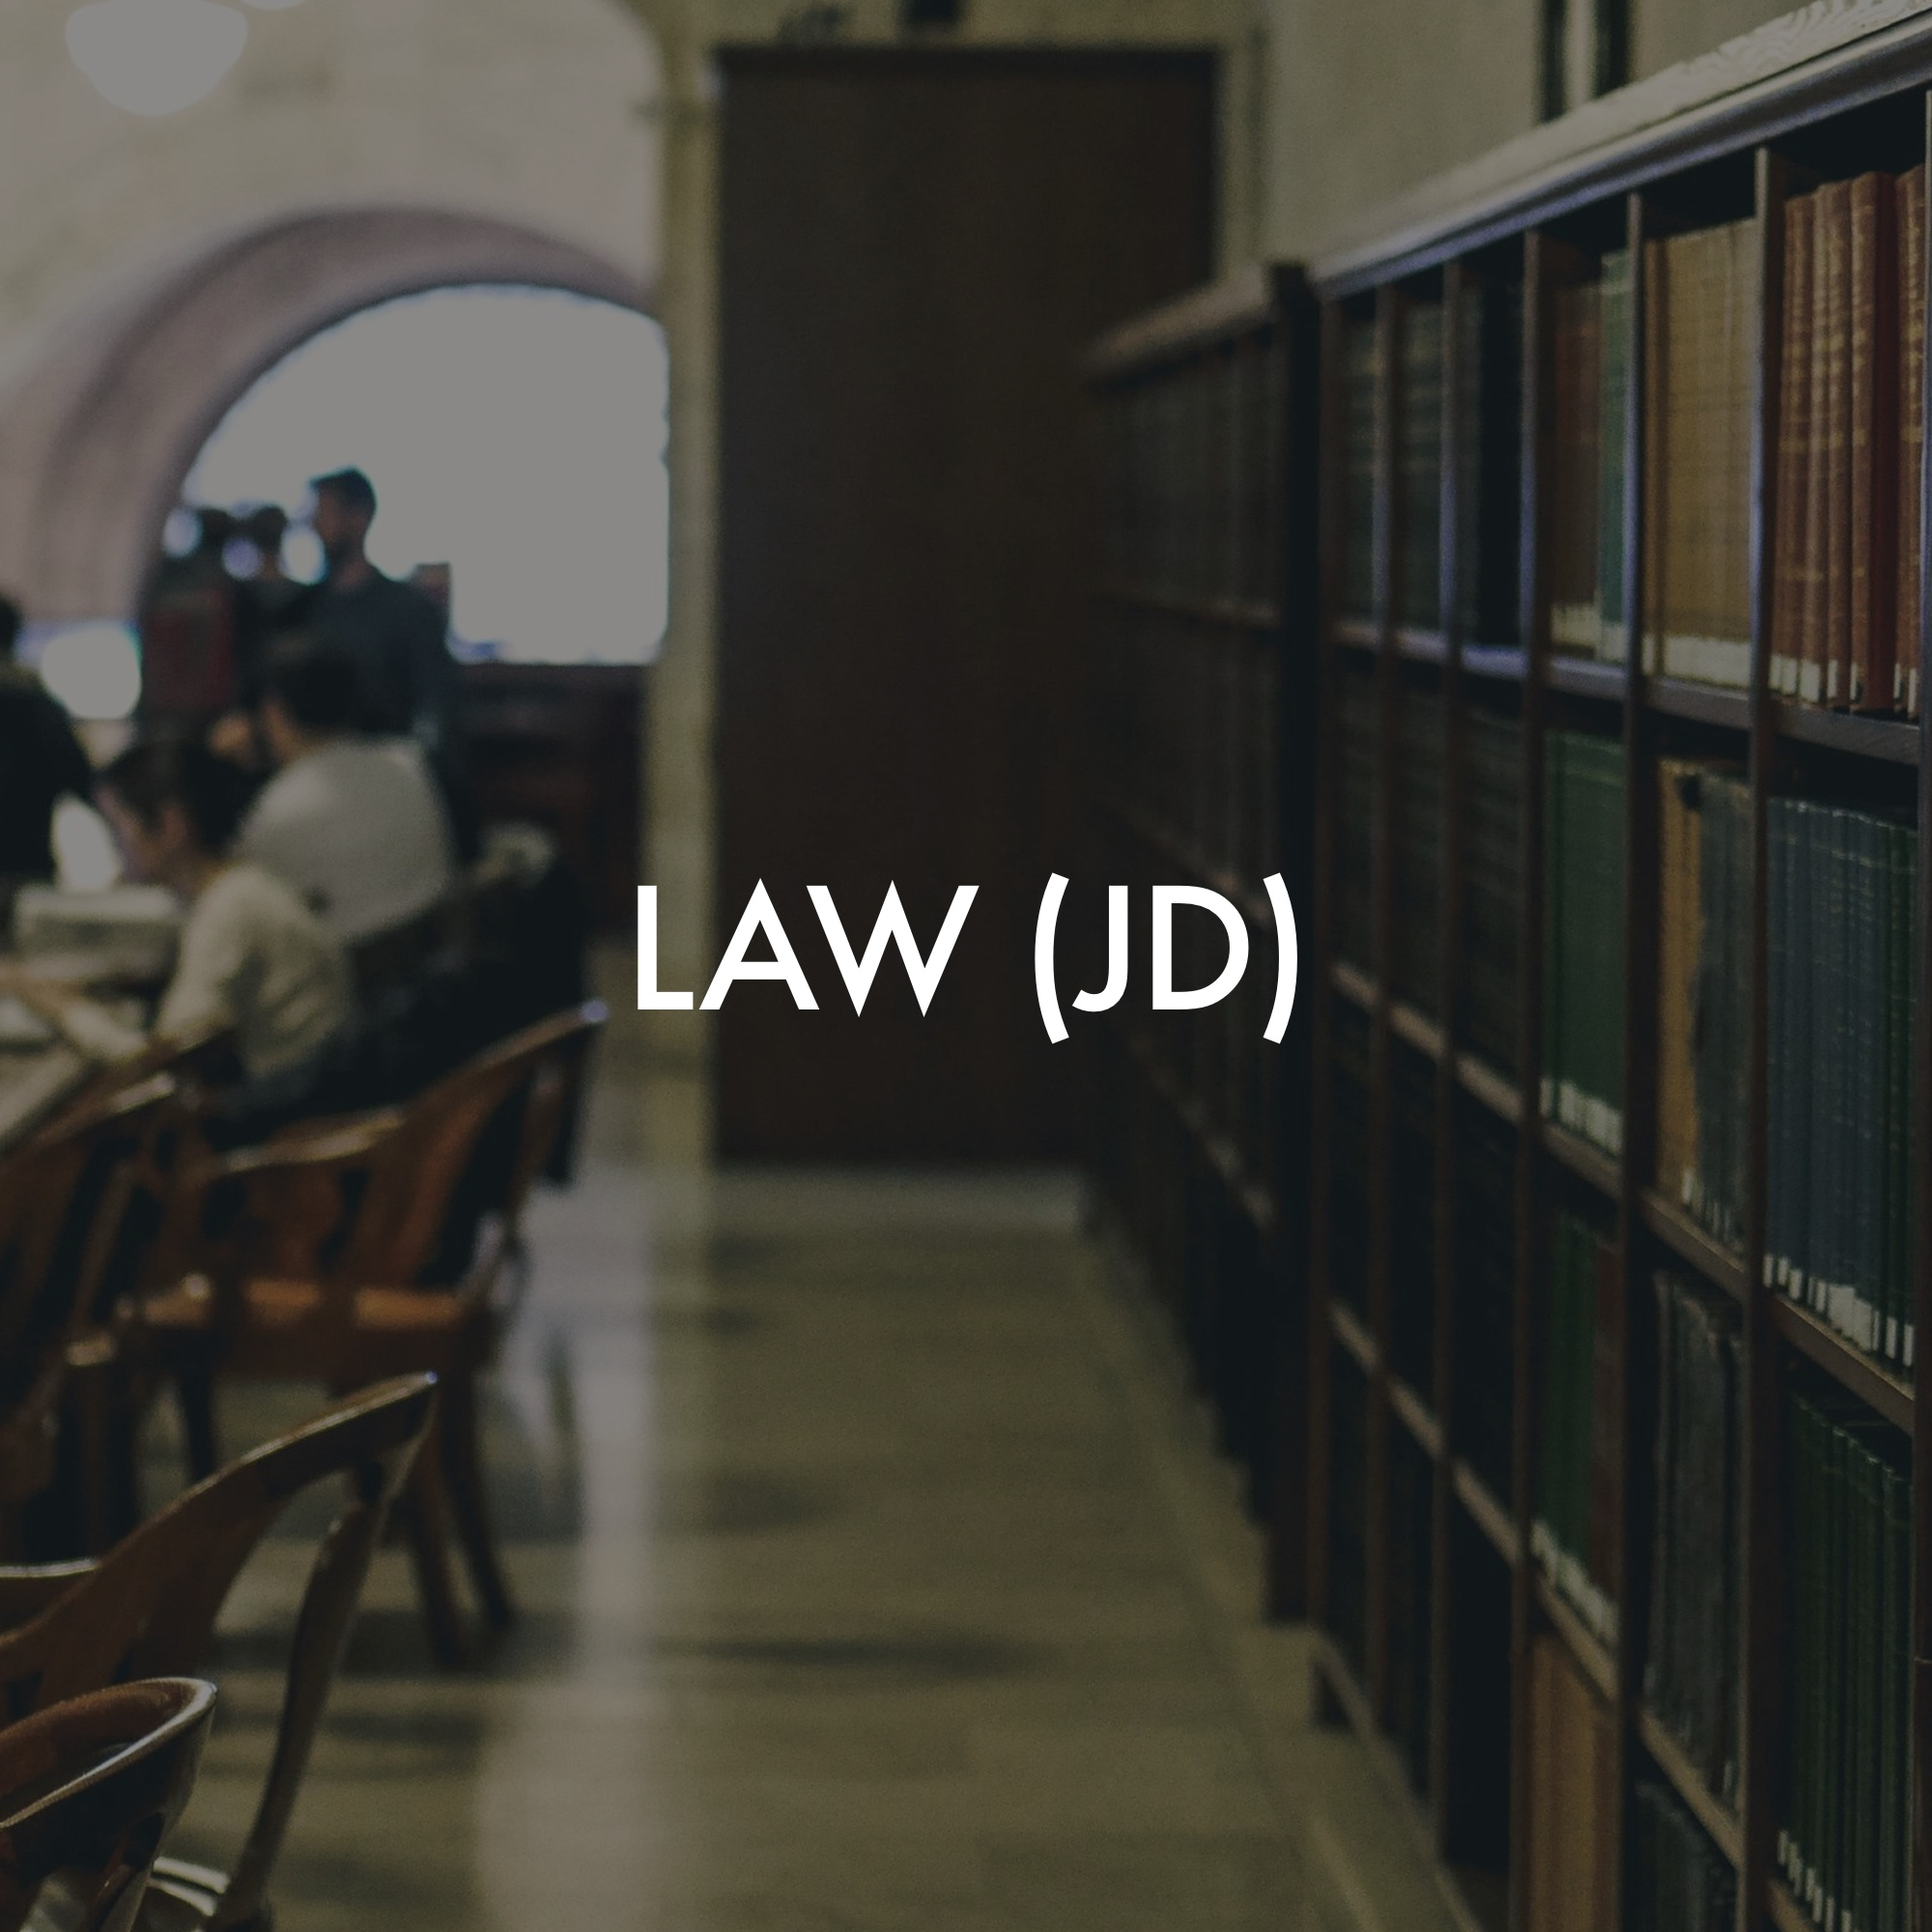 Apply Point Law Image.jpg